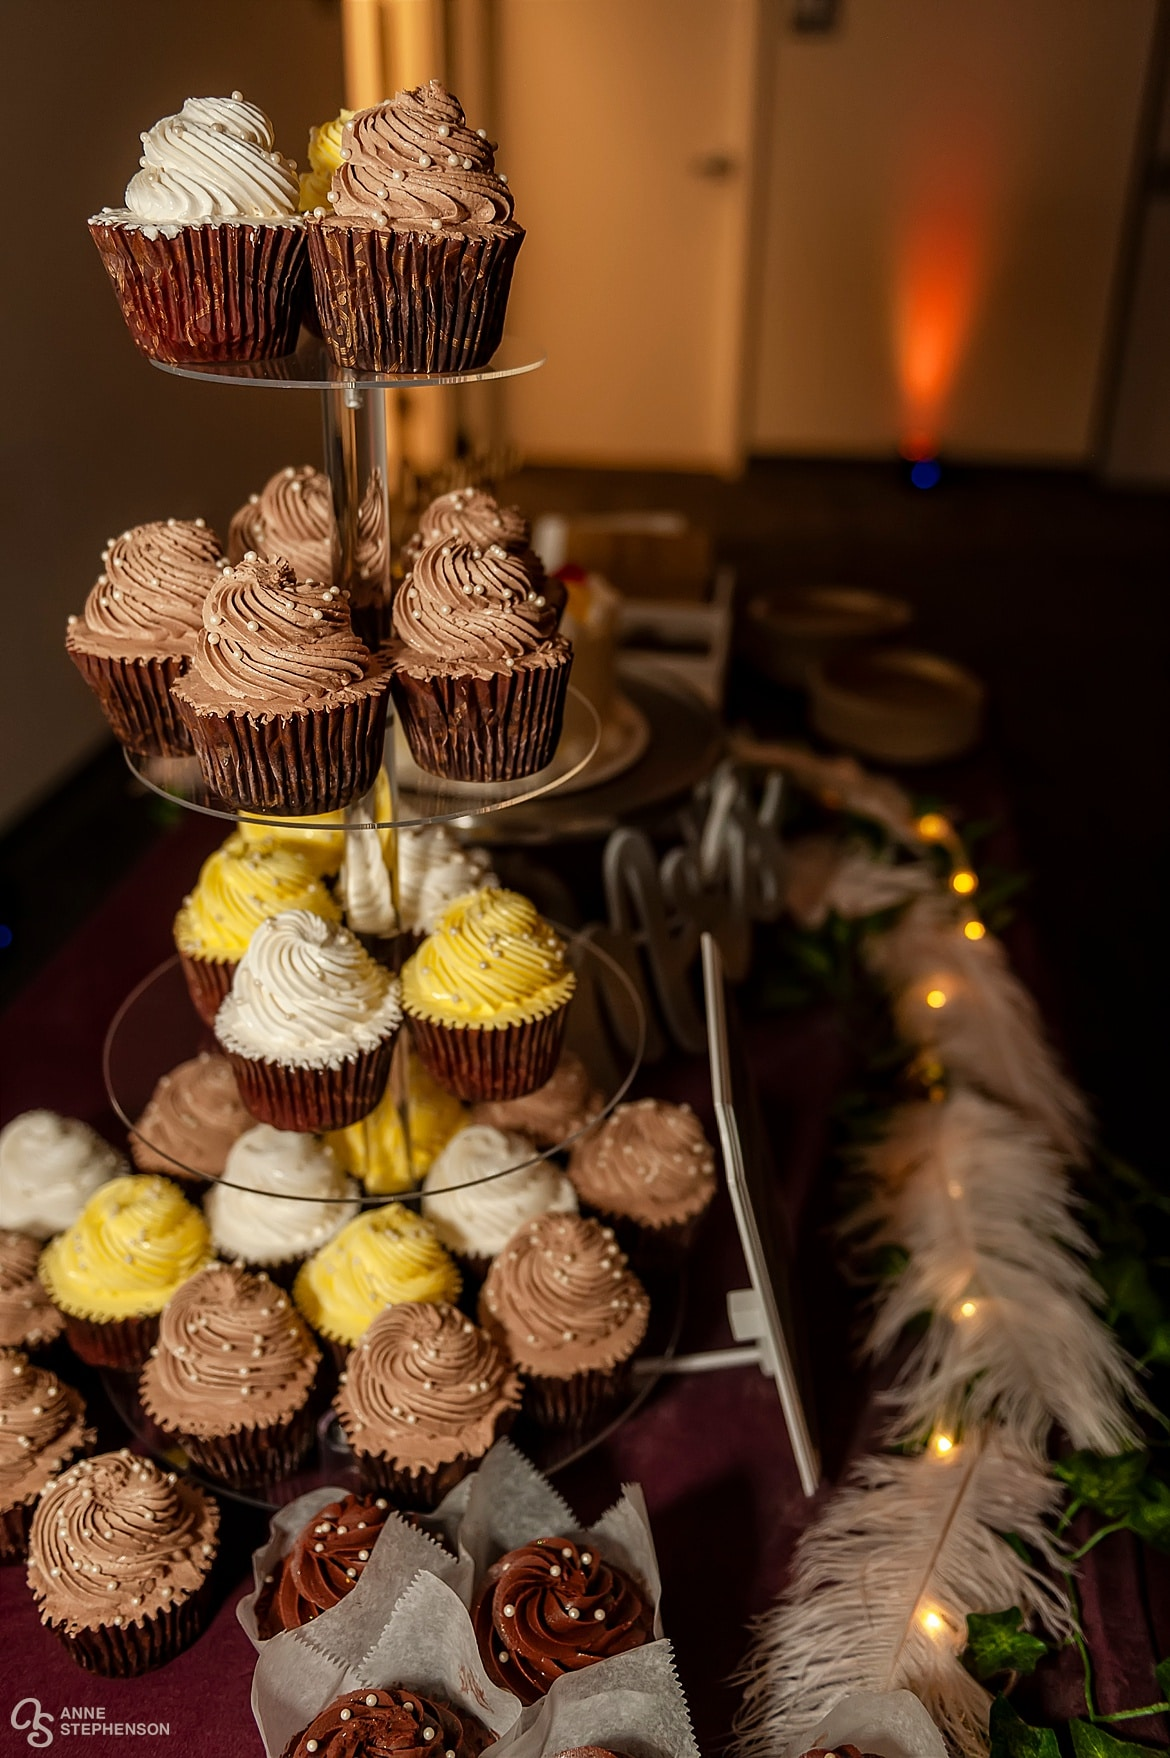 A cupcake tower made with bakery from Rheinlanders.